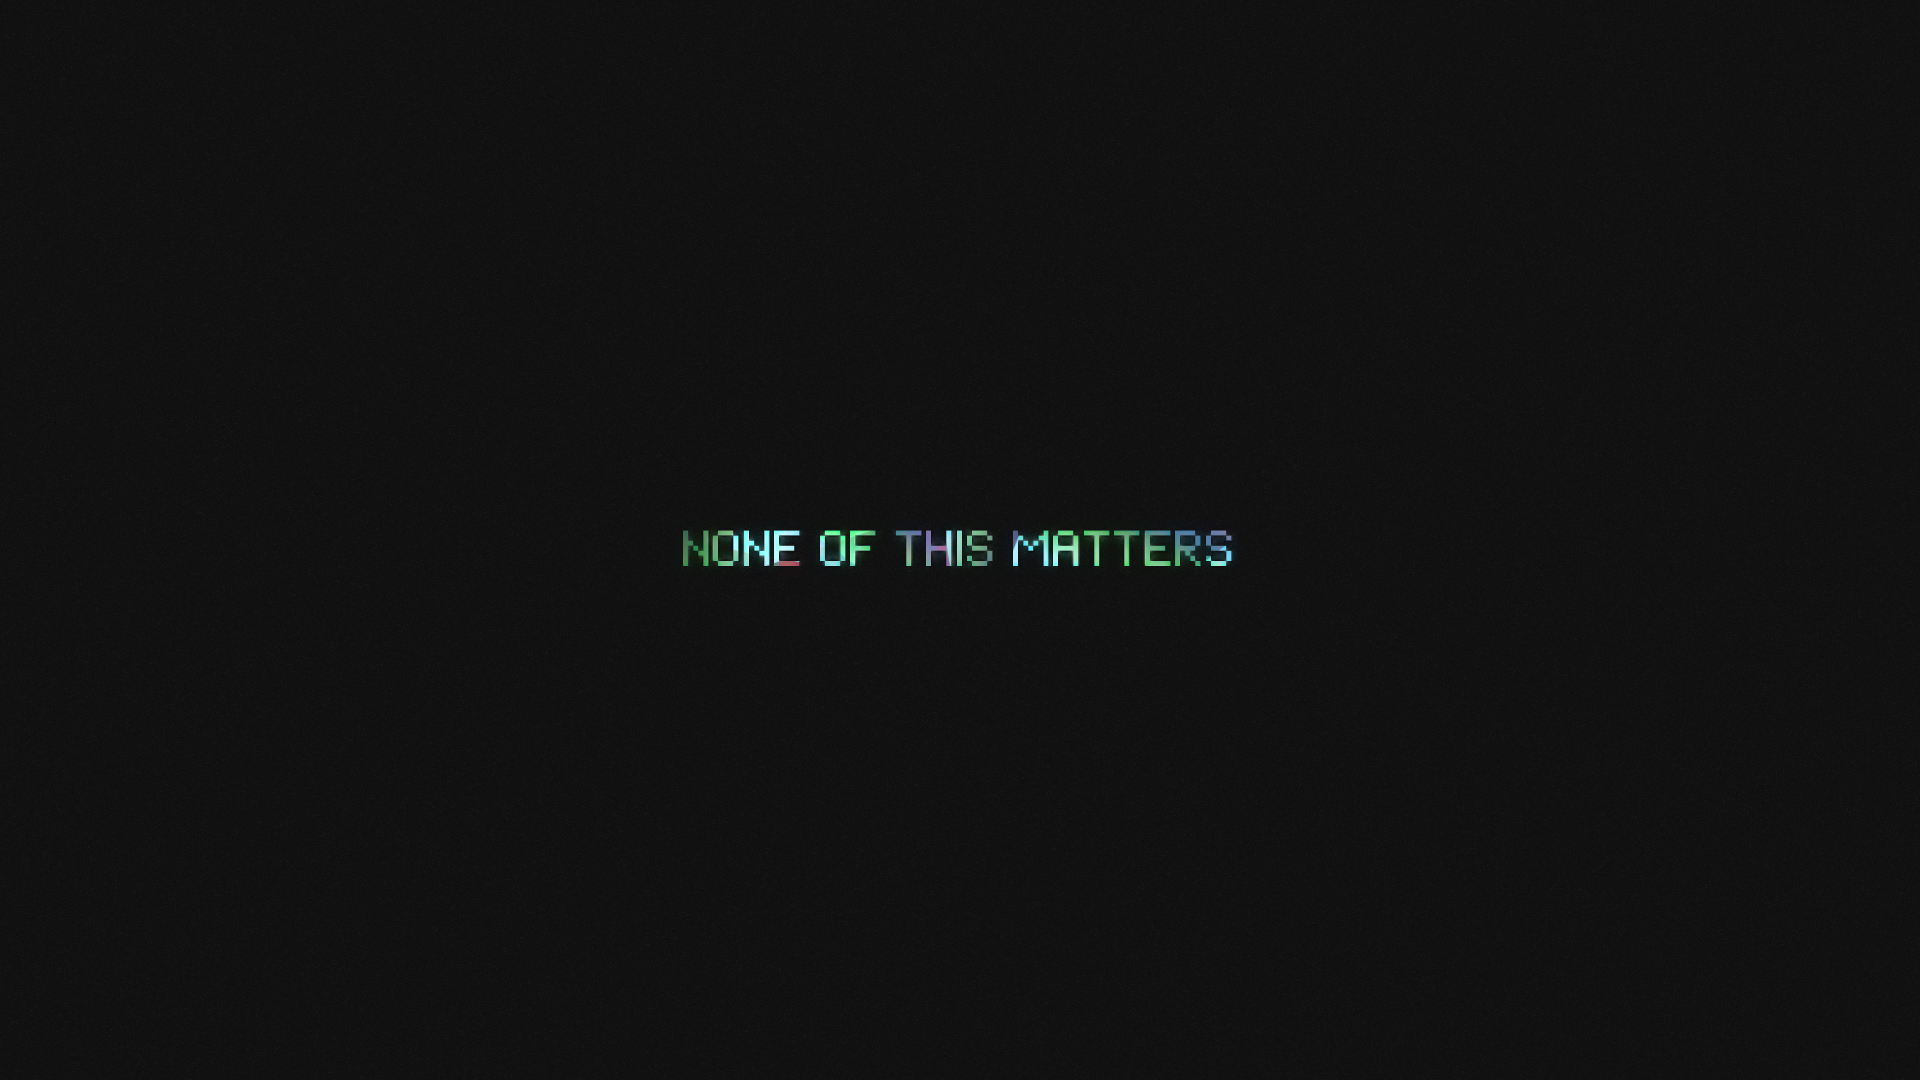 none_of_this_matters_by_vvachillesvv-d5jp679